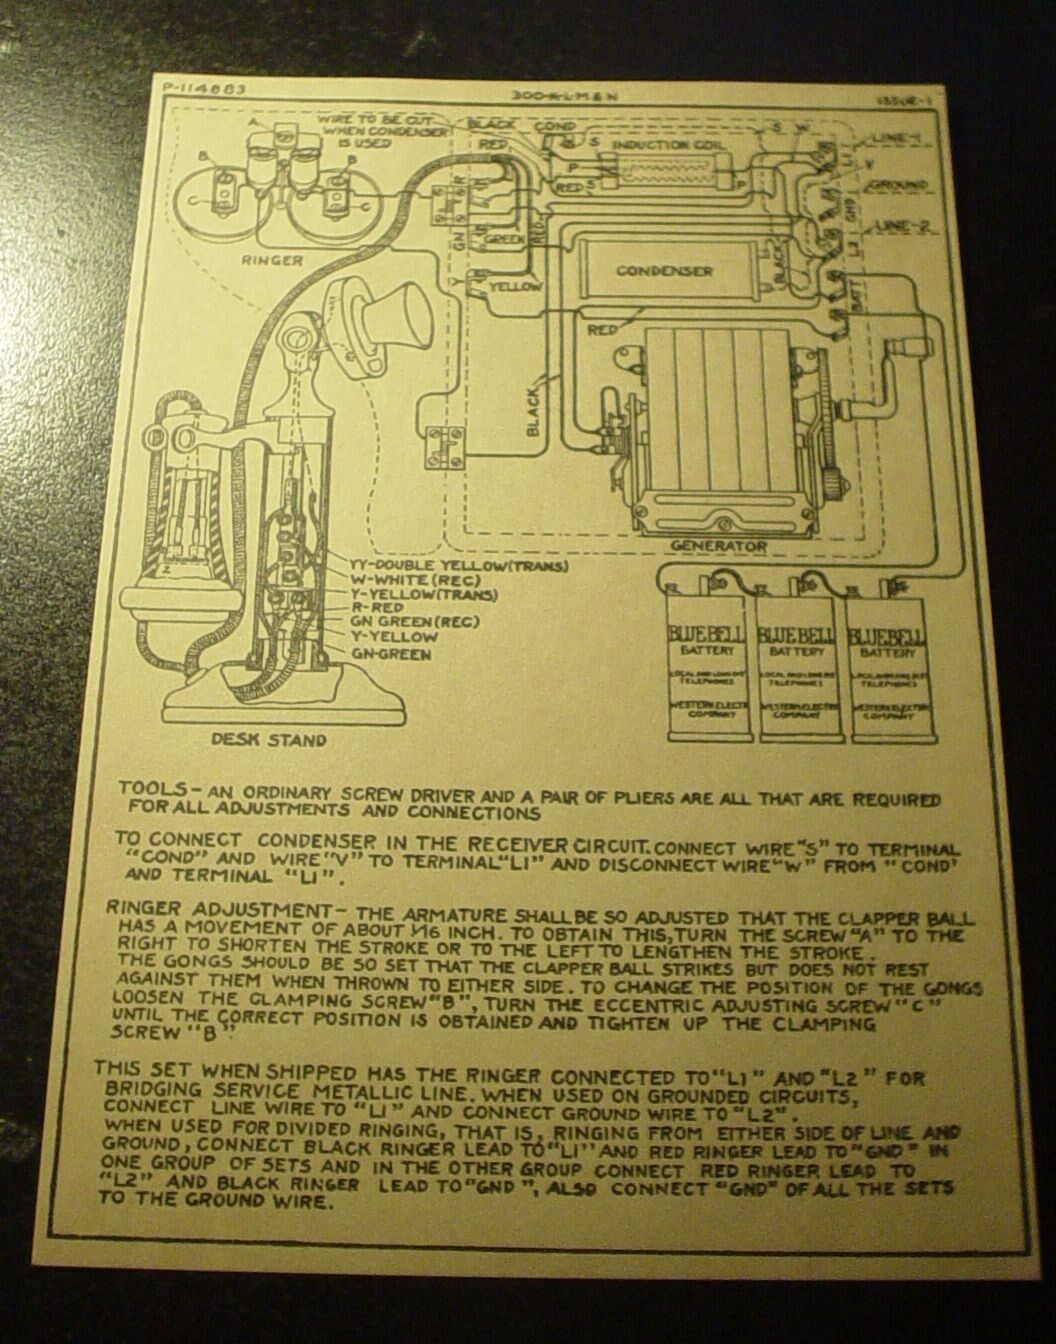 Western Electric Candlestick Desk Telephone Wiring Schematic Diagram 1 of 1  See More